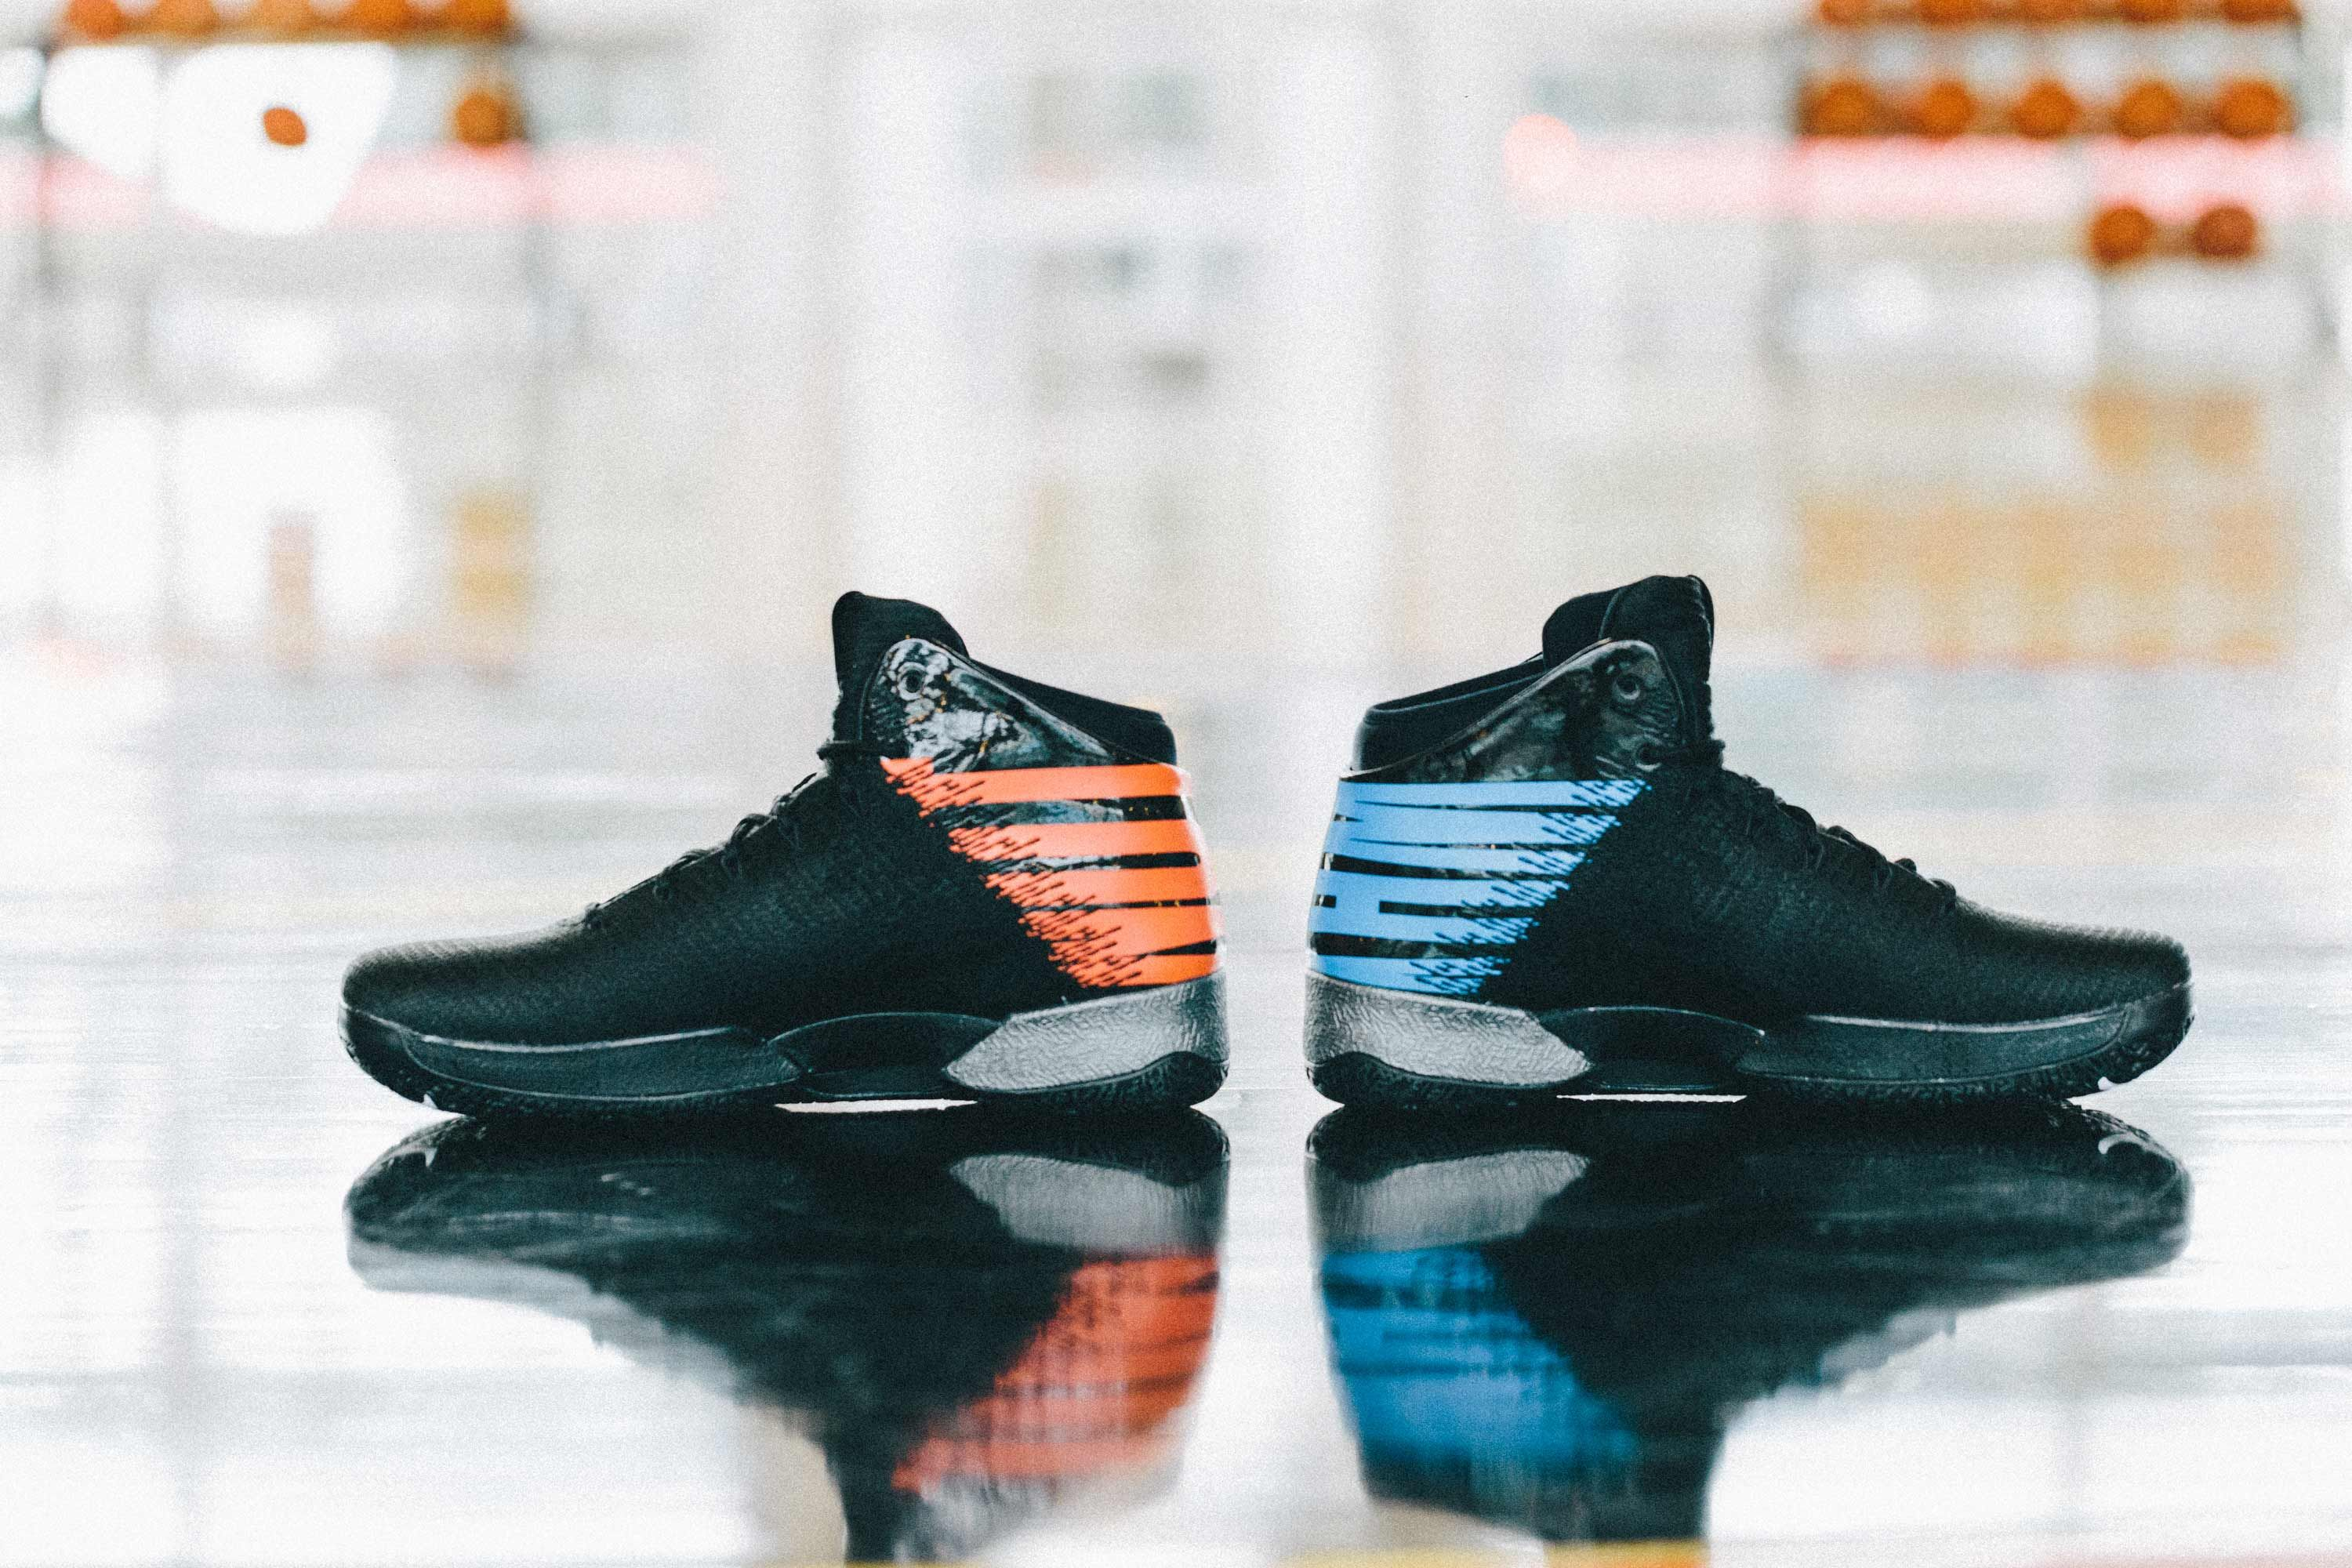 4368a80db32f Here s a look at Russell Westbrook s Air Jordan Why Not PE that he wore  against the Portland Trailblazers.